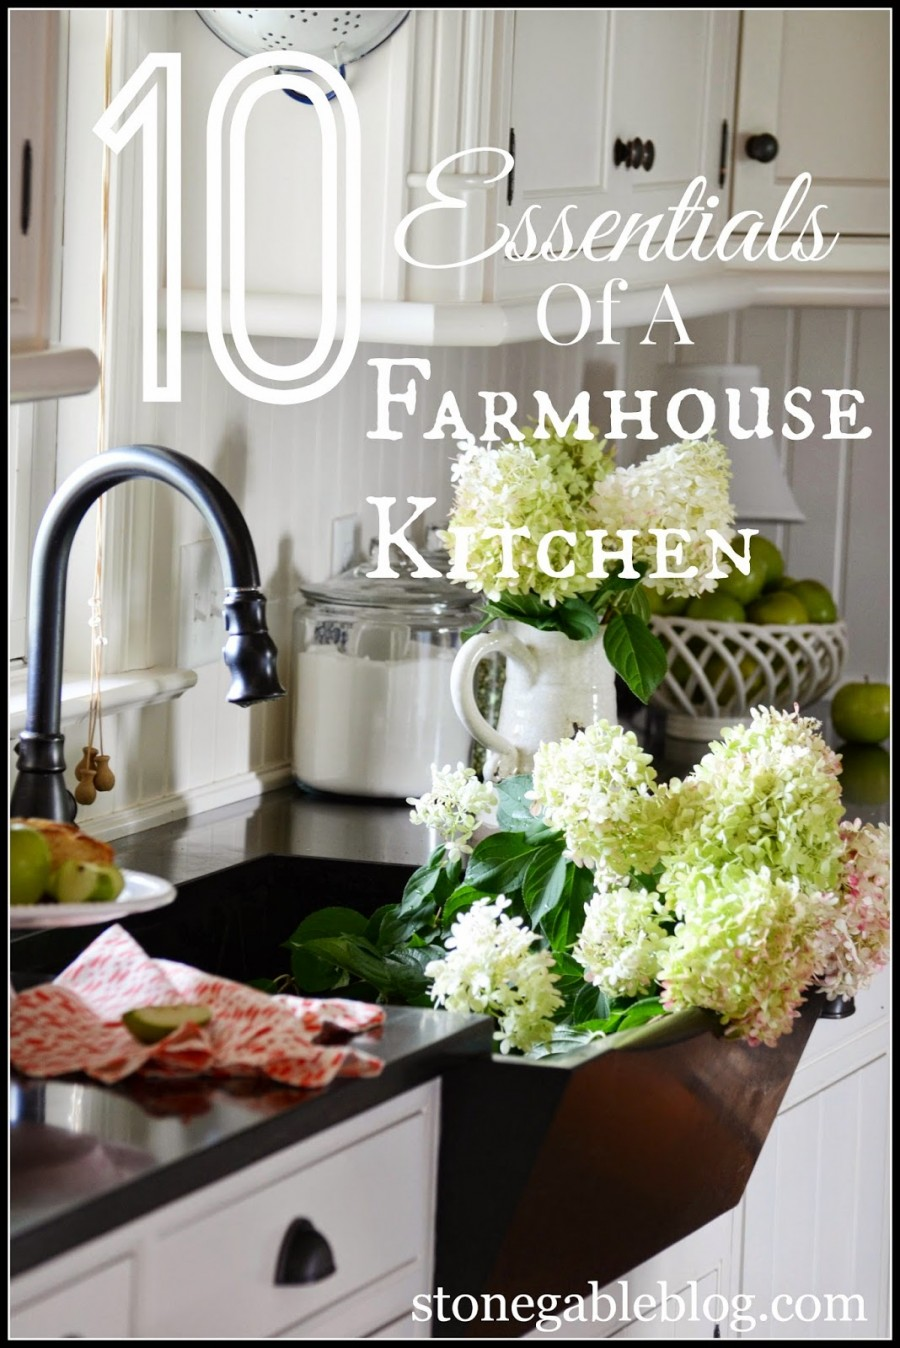 THE BEST DECORATING TIPS OF 2014 StoneGable : 10 ELEMENTS OF A FARMHOUSE KITCHEN TITLE PAGE STONEGABLEBLOGCOM from stonegableblog.com size 900 x 1348 jpeg 242kB